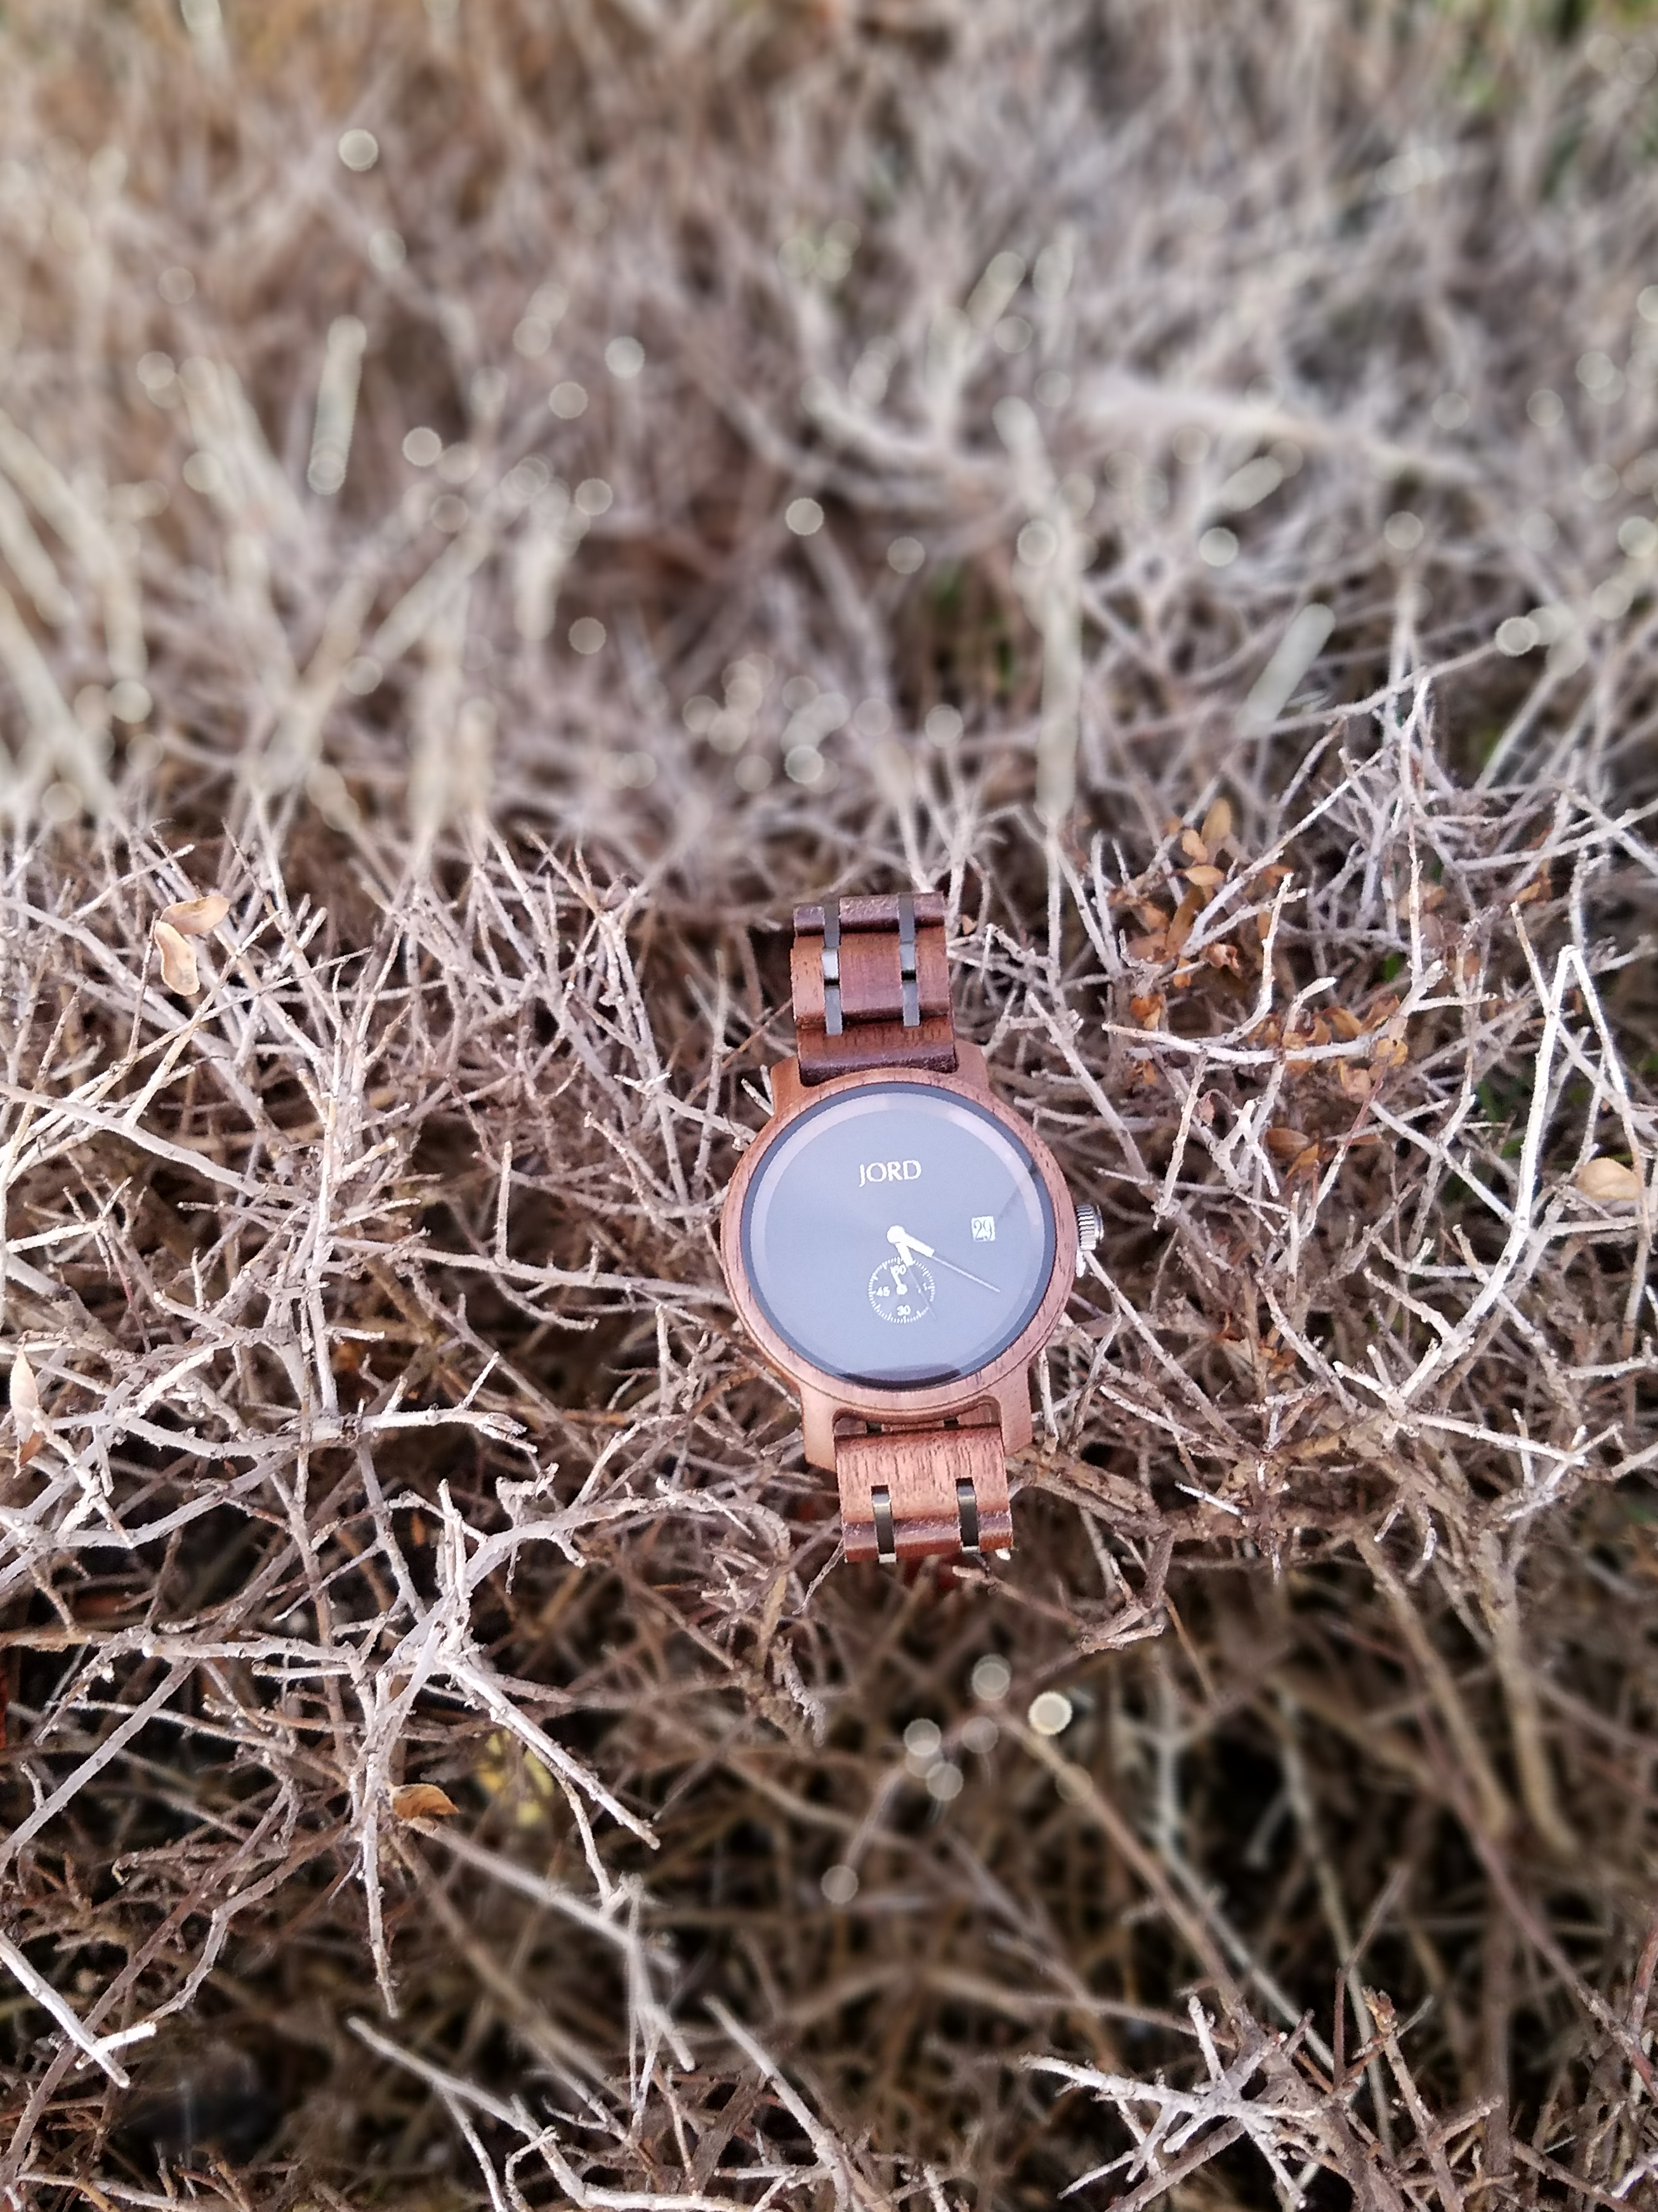 LOOKING FOR A BEAUTIFUL AND UNIQUE HOLIDAY GIFT? JORD WOOD WATCHES 25 % OFF DISCOUNT CODE!